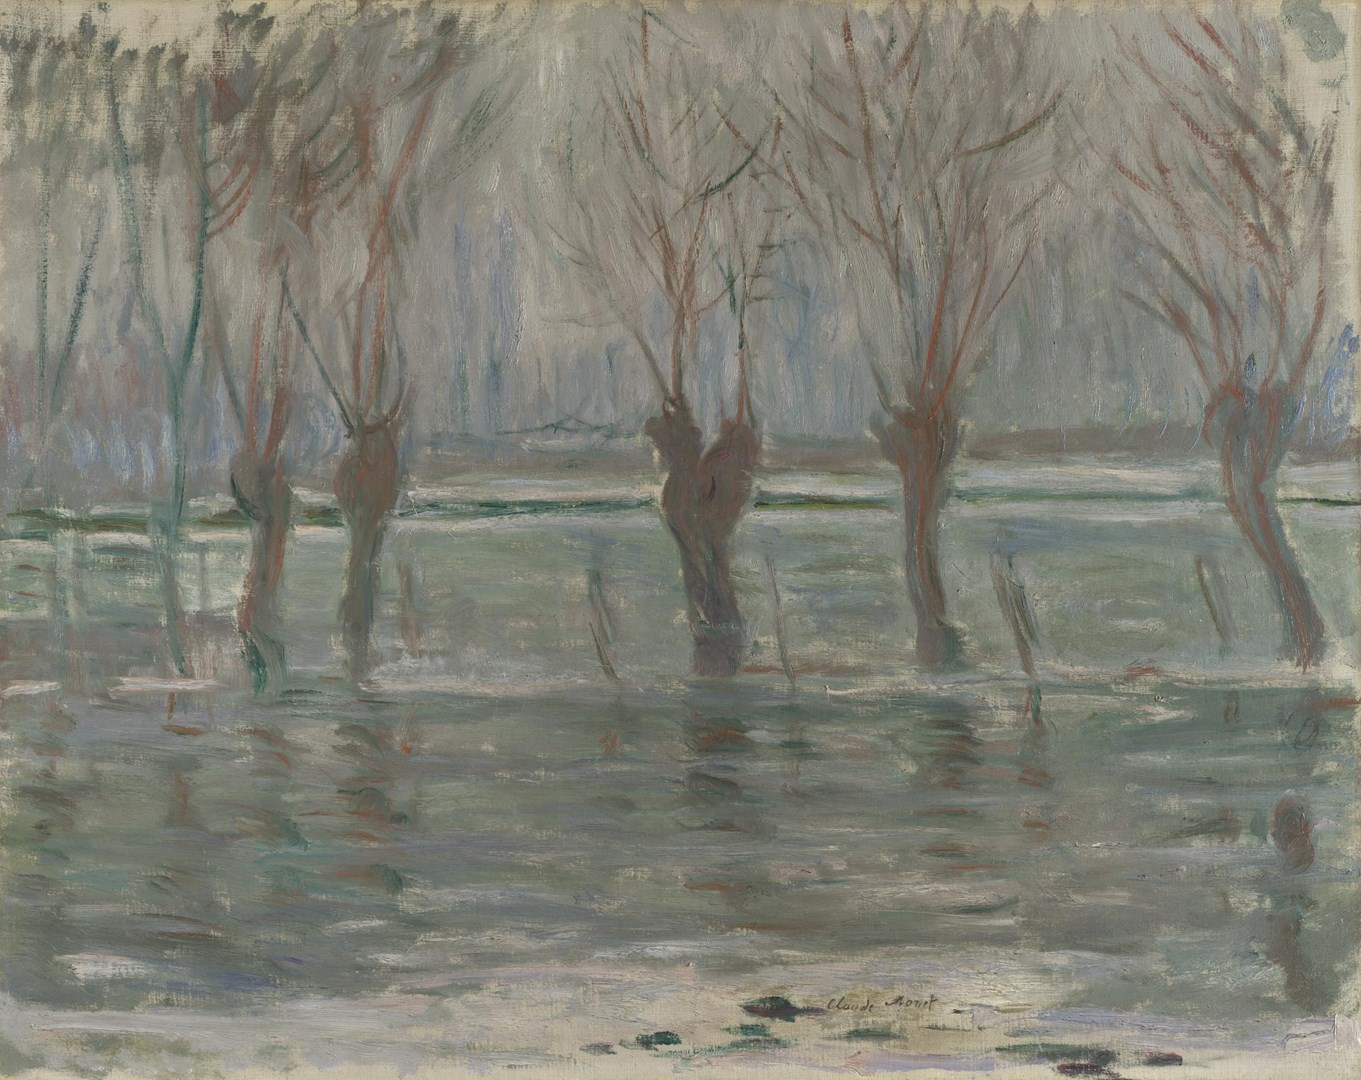 Flood Waters by Claude Monet